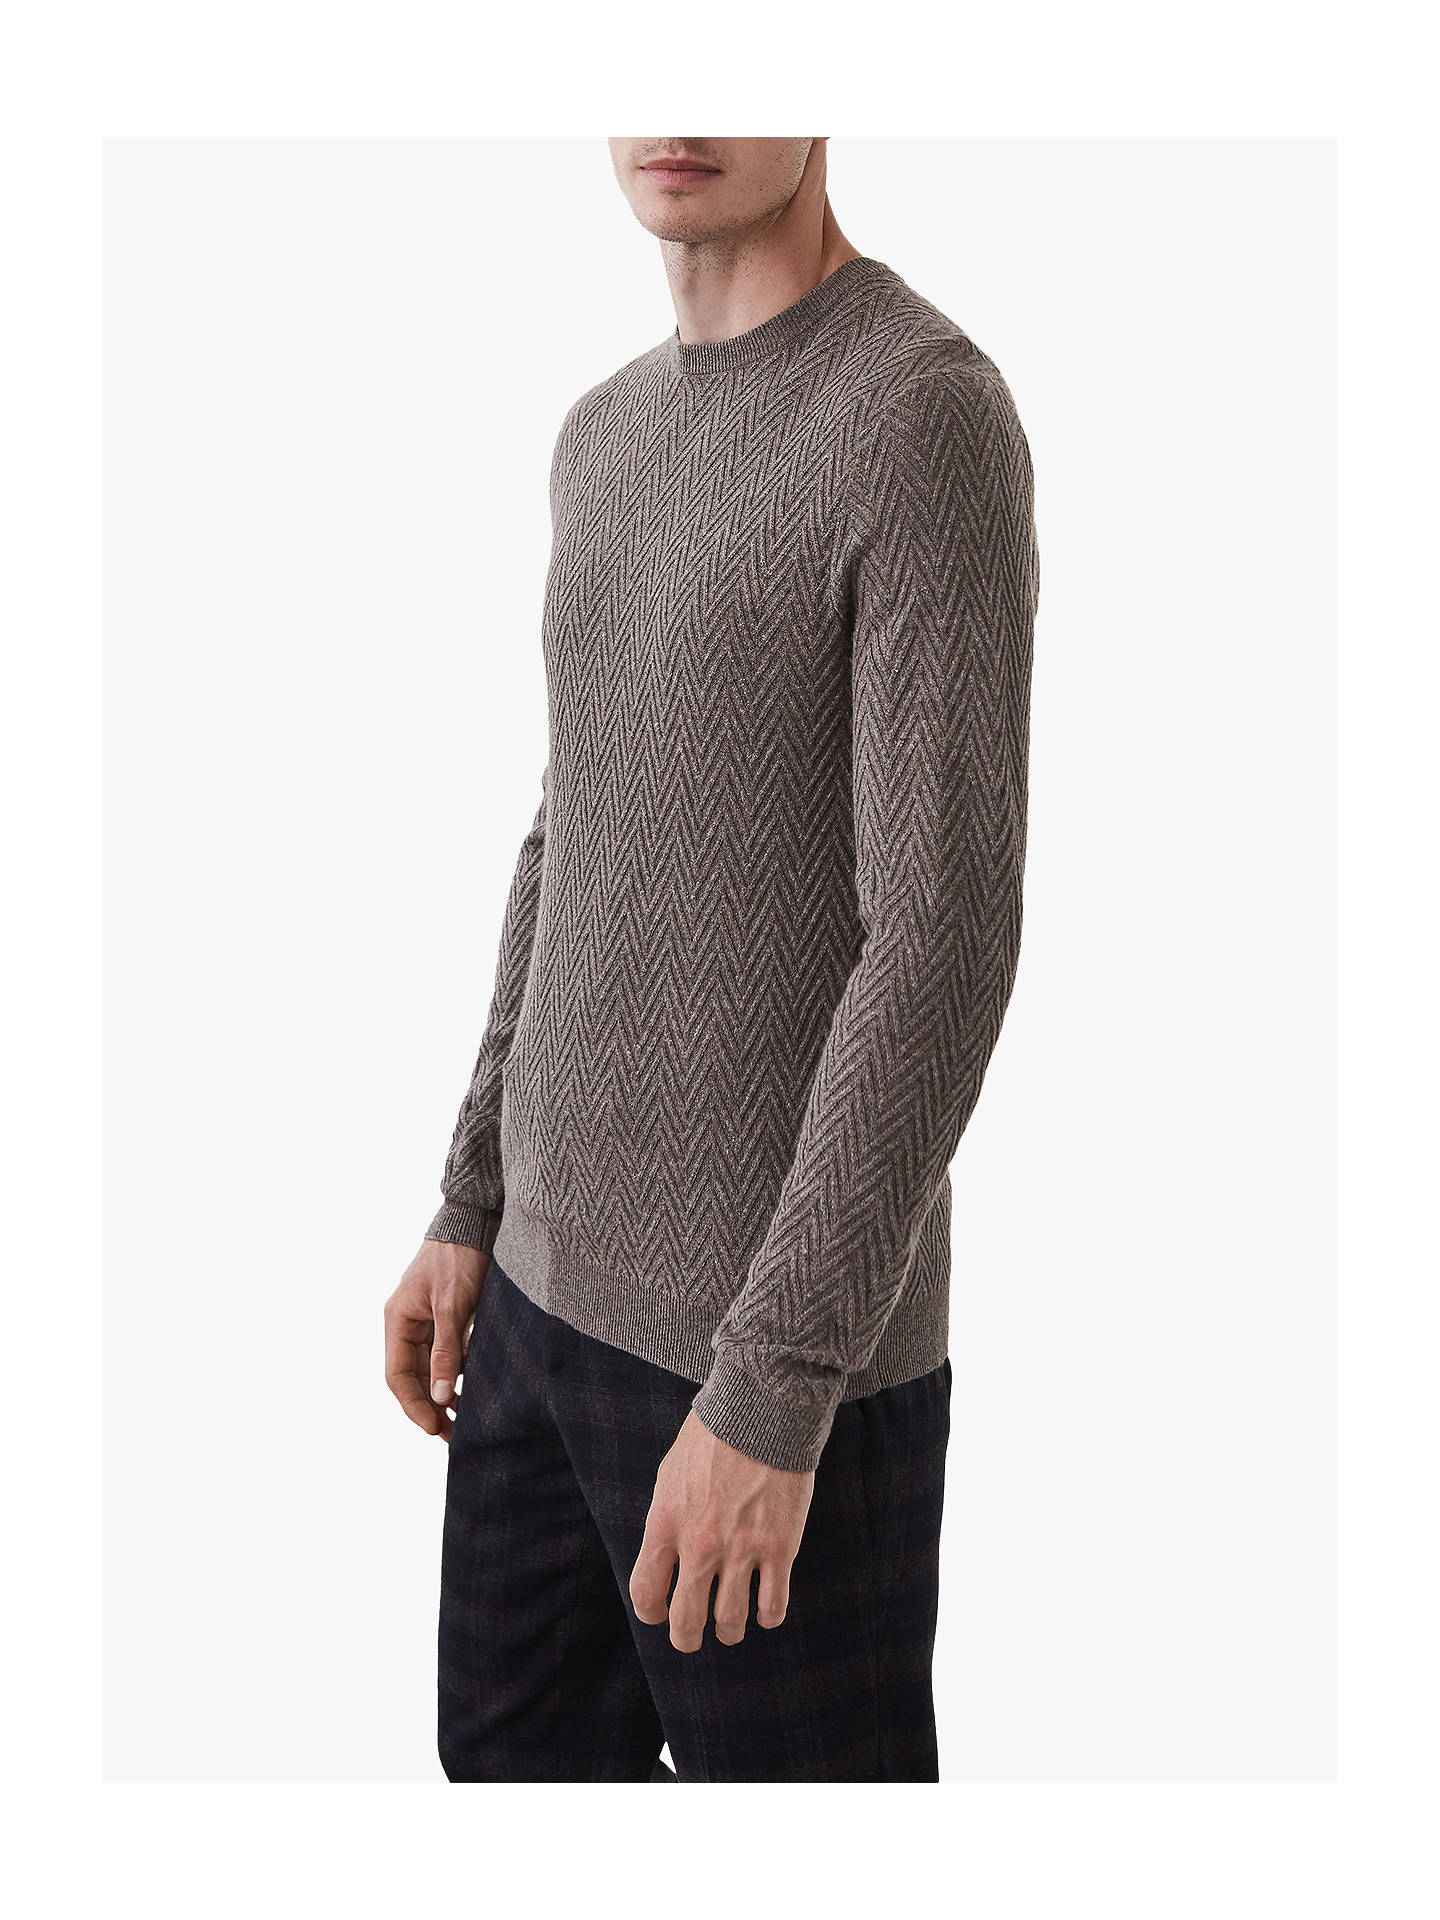 BuyReiss Avons Chevron Cable Knit Jumper, Taupe, S Online at johnlewis.com